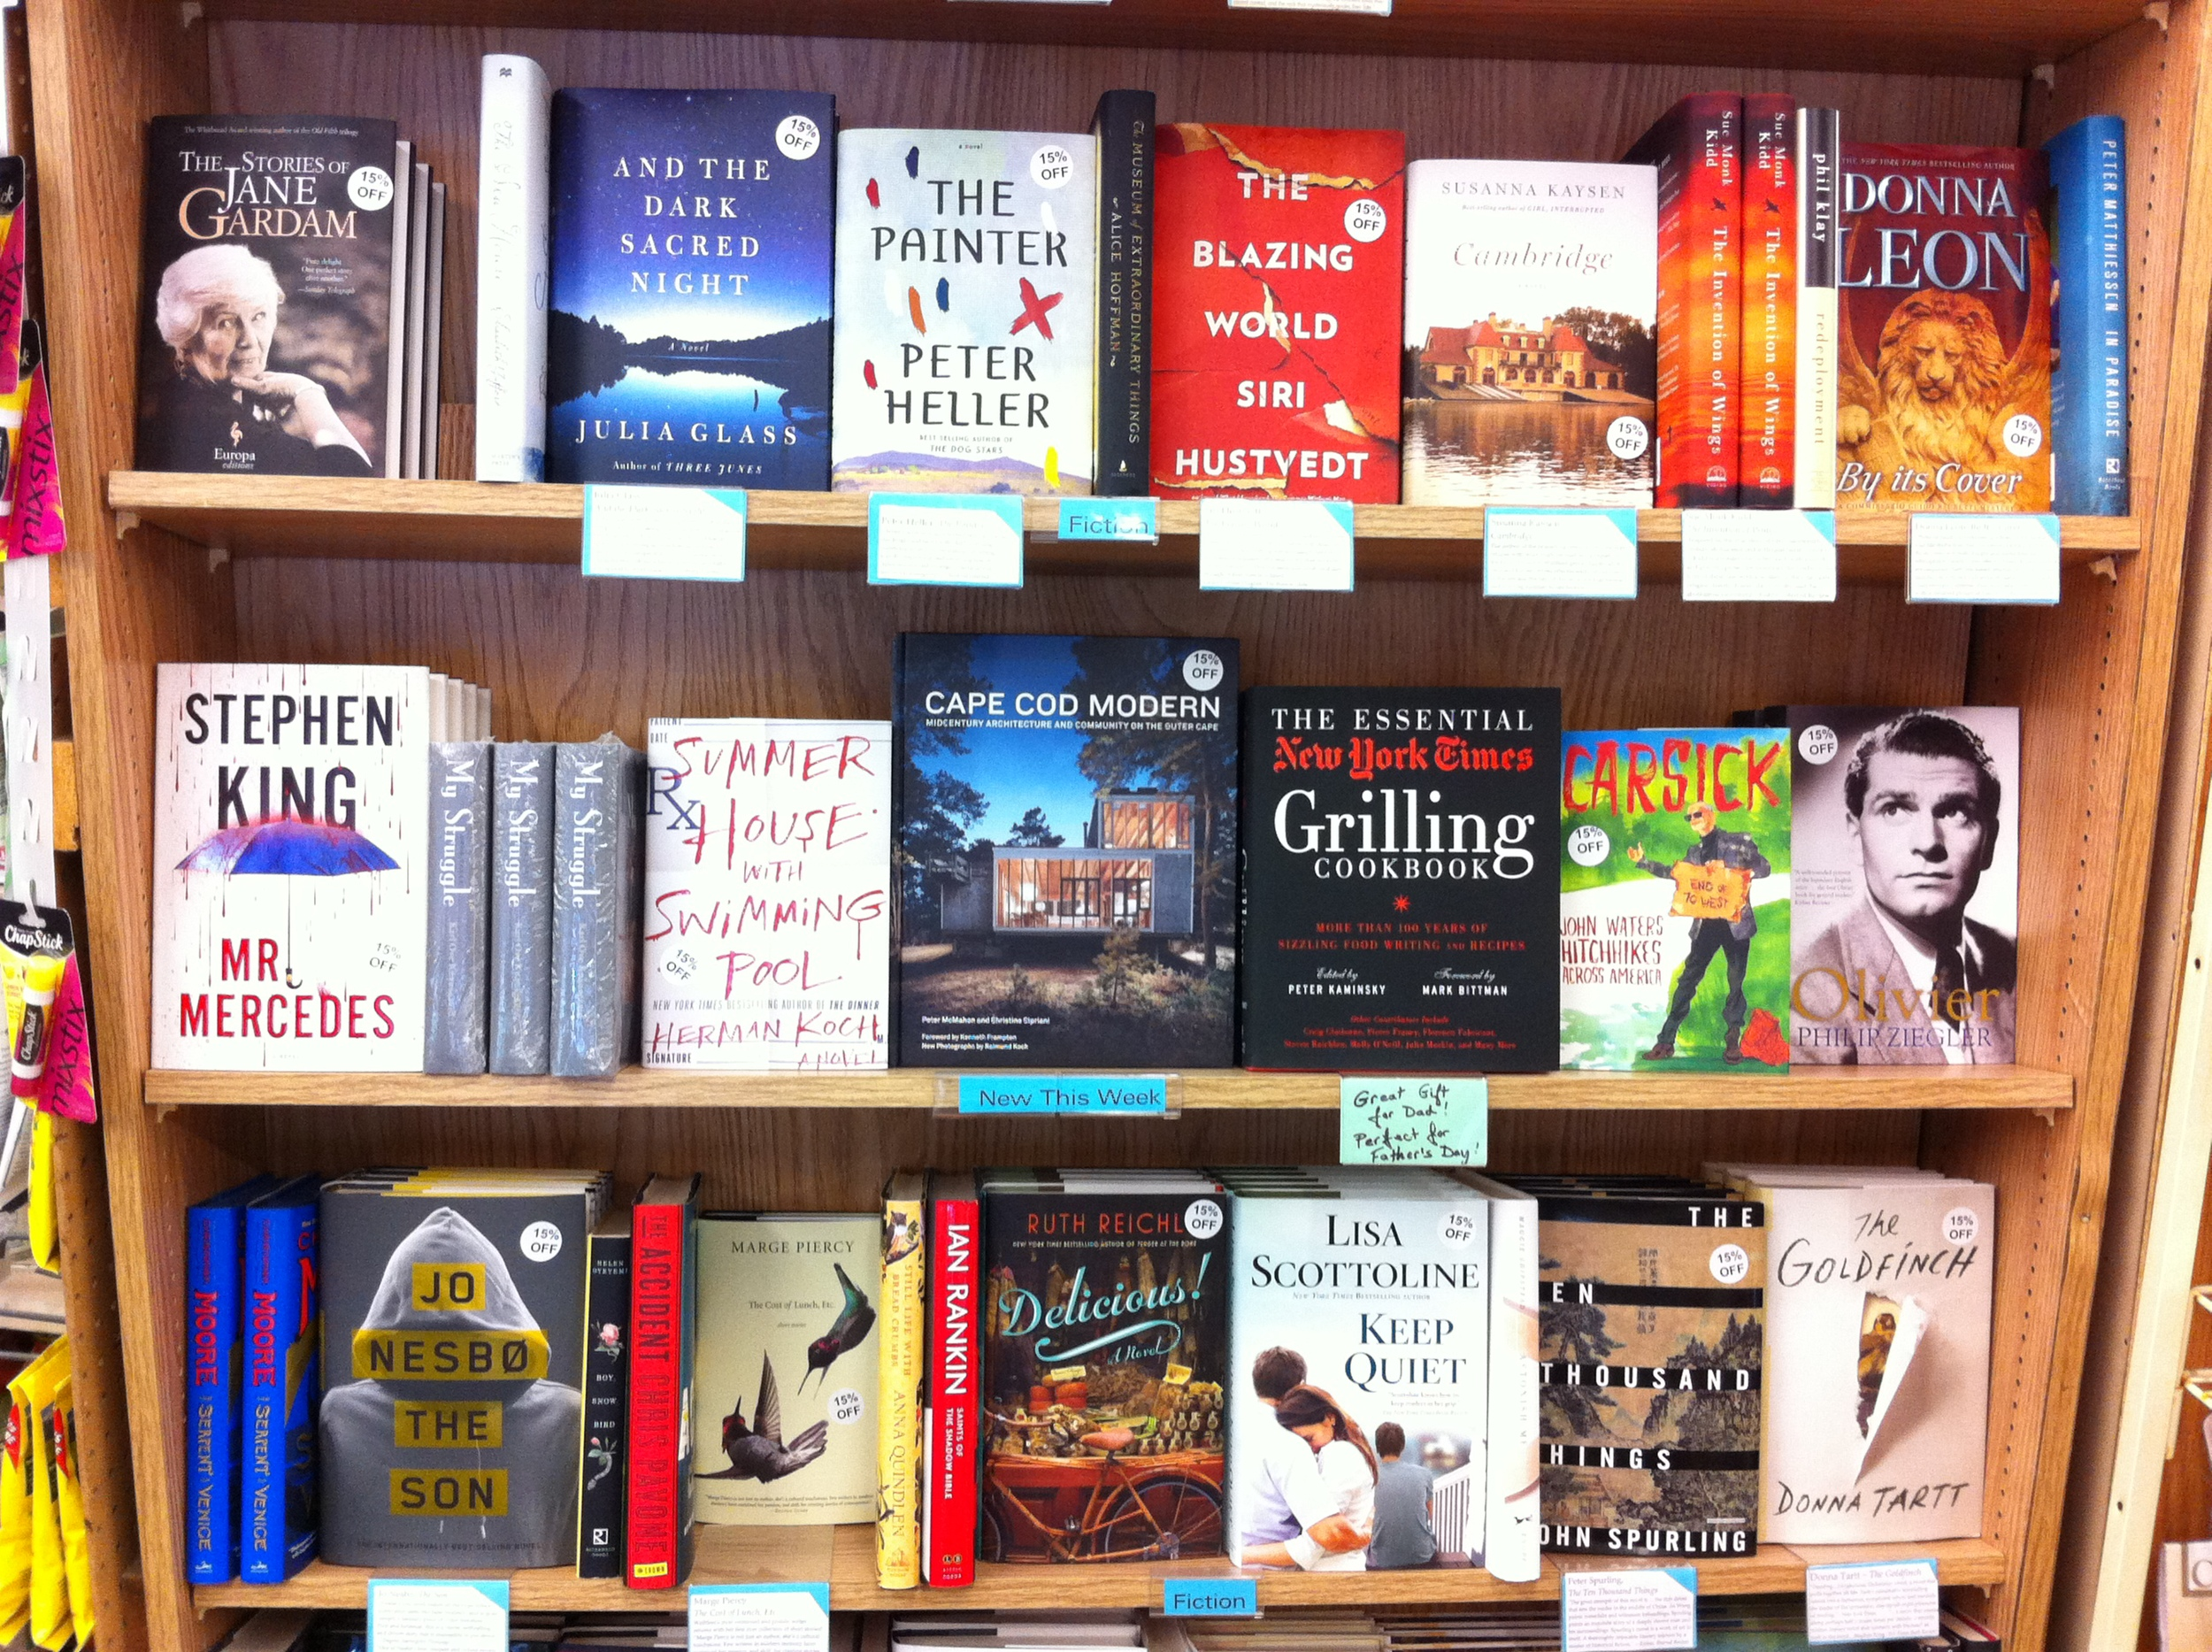 Sharing pride of place with the NYT Grilling Cookbook  atthe Wellfleet Marketplace, June 2014 Photo: Diana Murphy